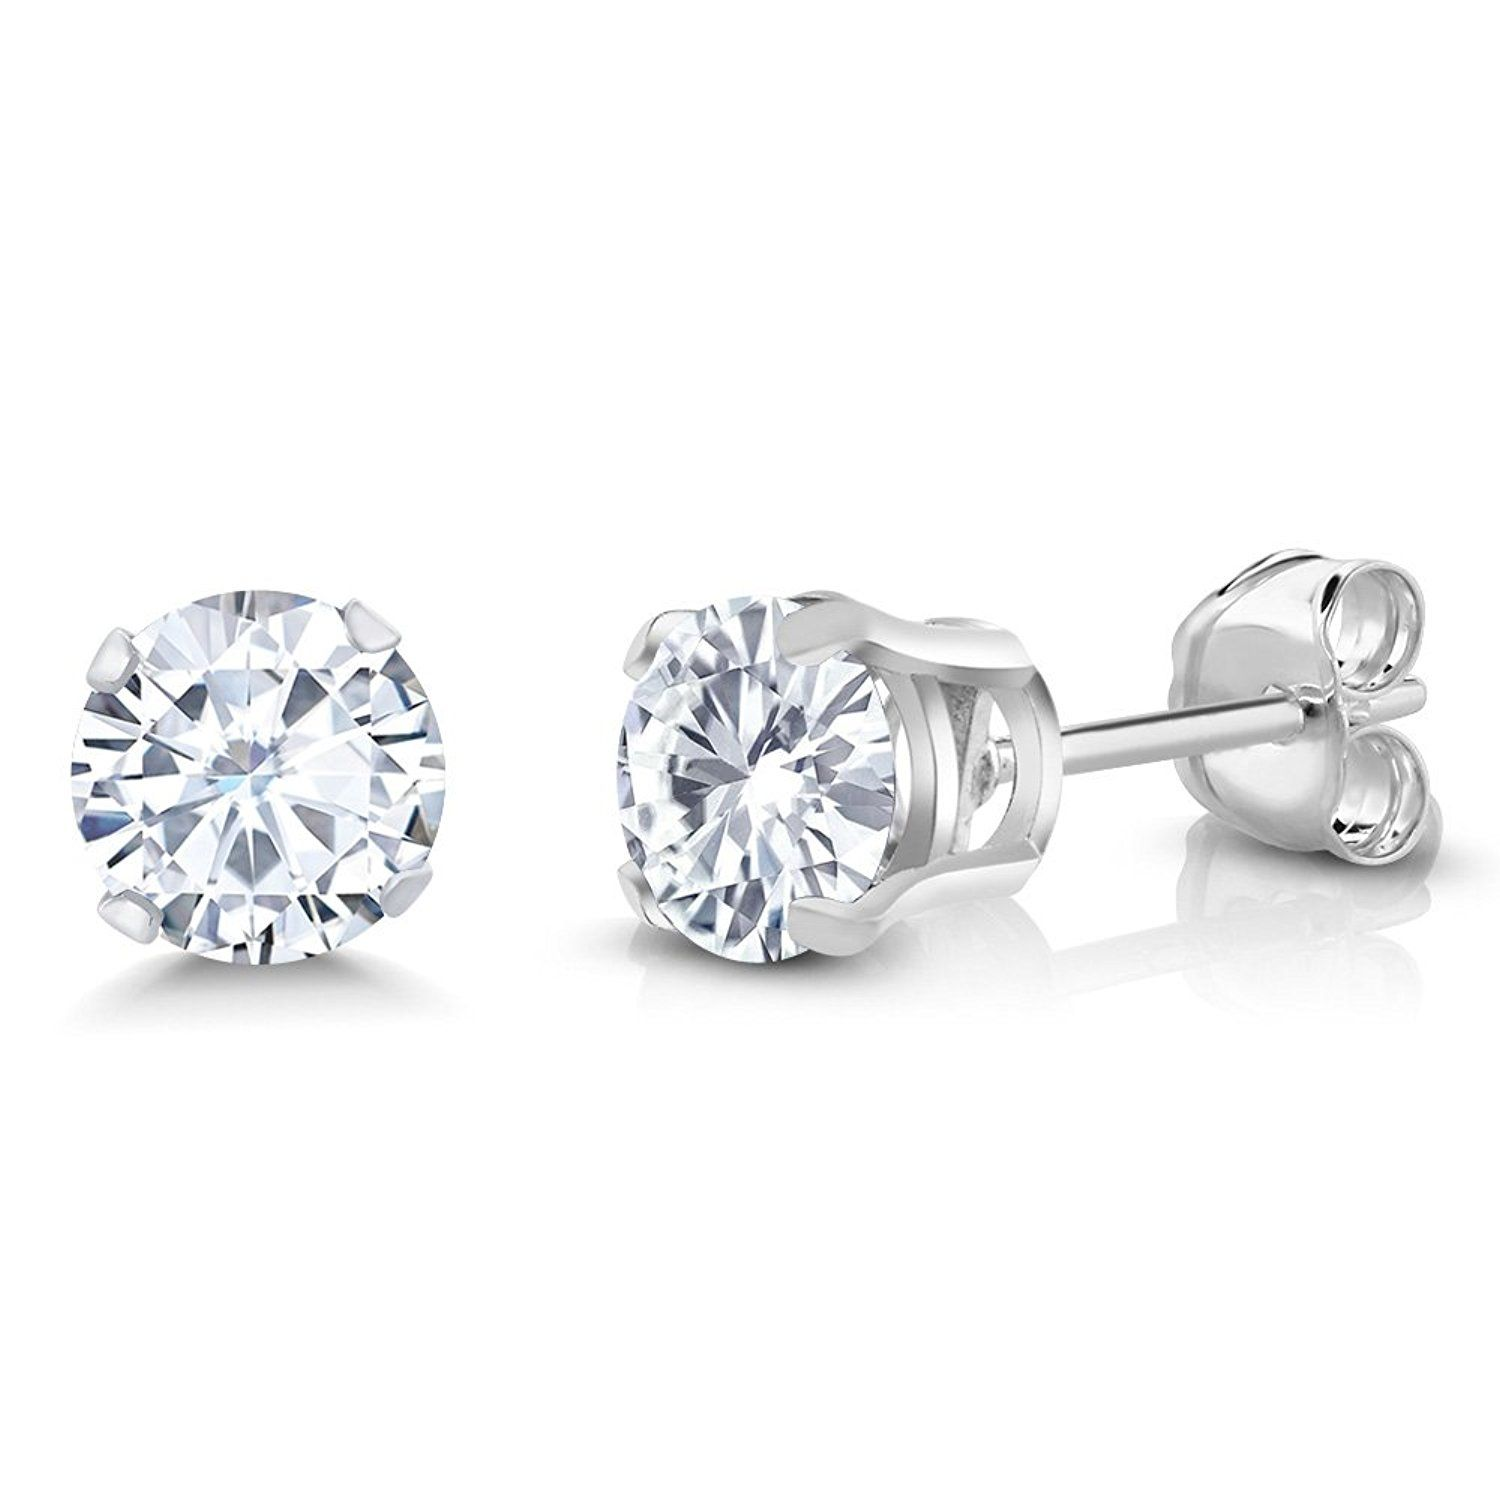 gold moissanite pinterest h earrings products star pin stud